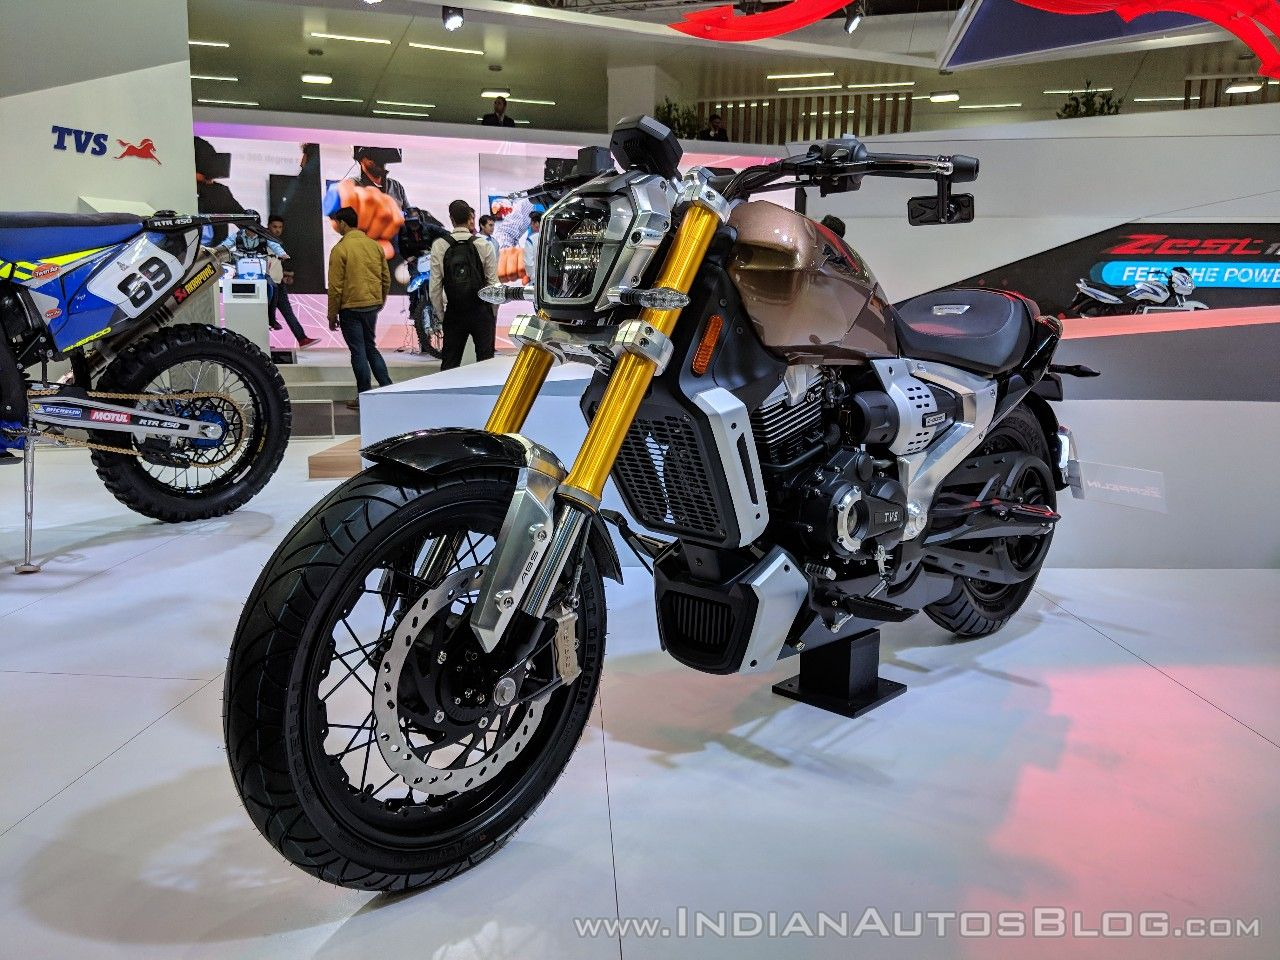 2018 TVS Zeppelin Cruiser Concept unveiled in India